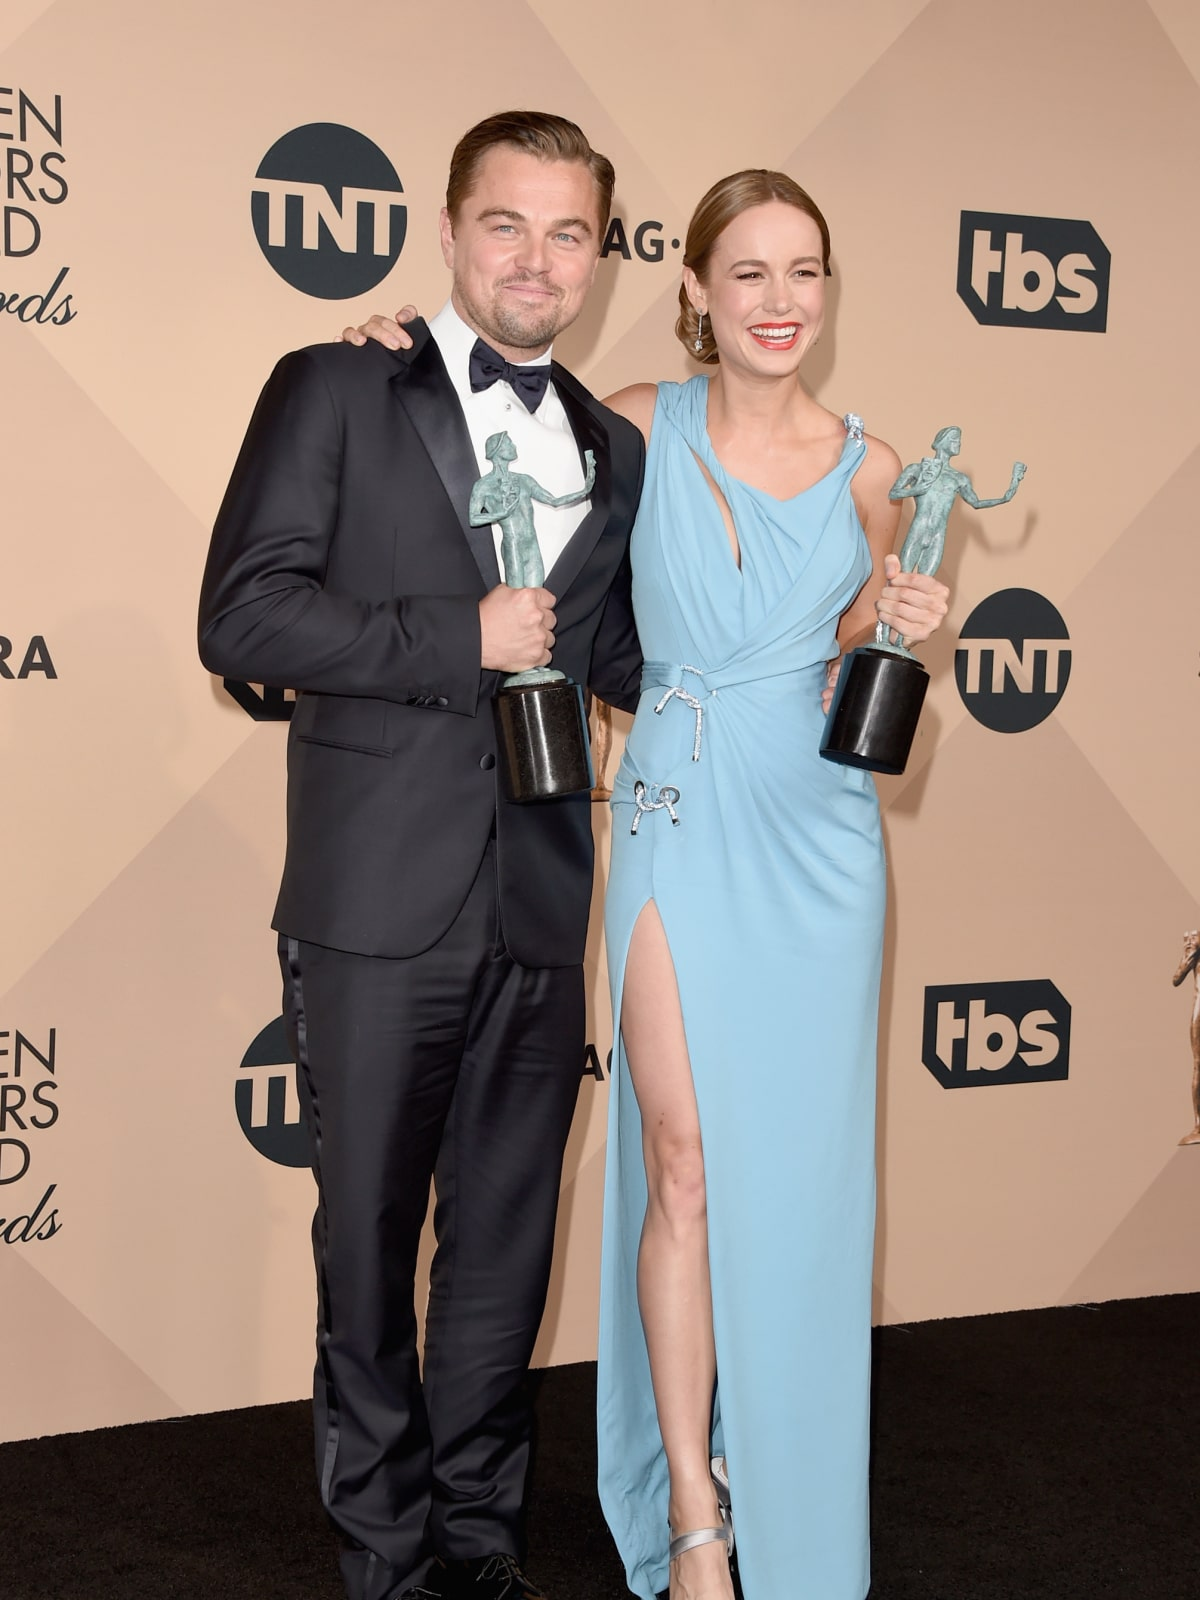 Leonardo DiCaprio and Brie Larson at the Screen Actors Guilds Awards